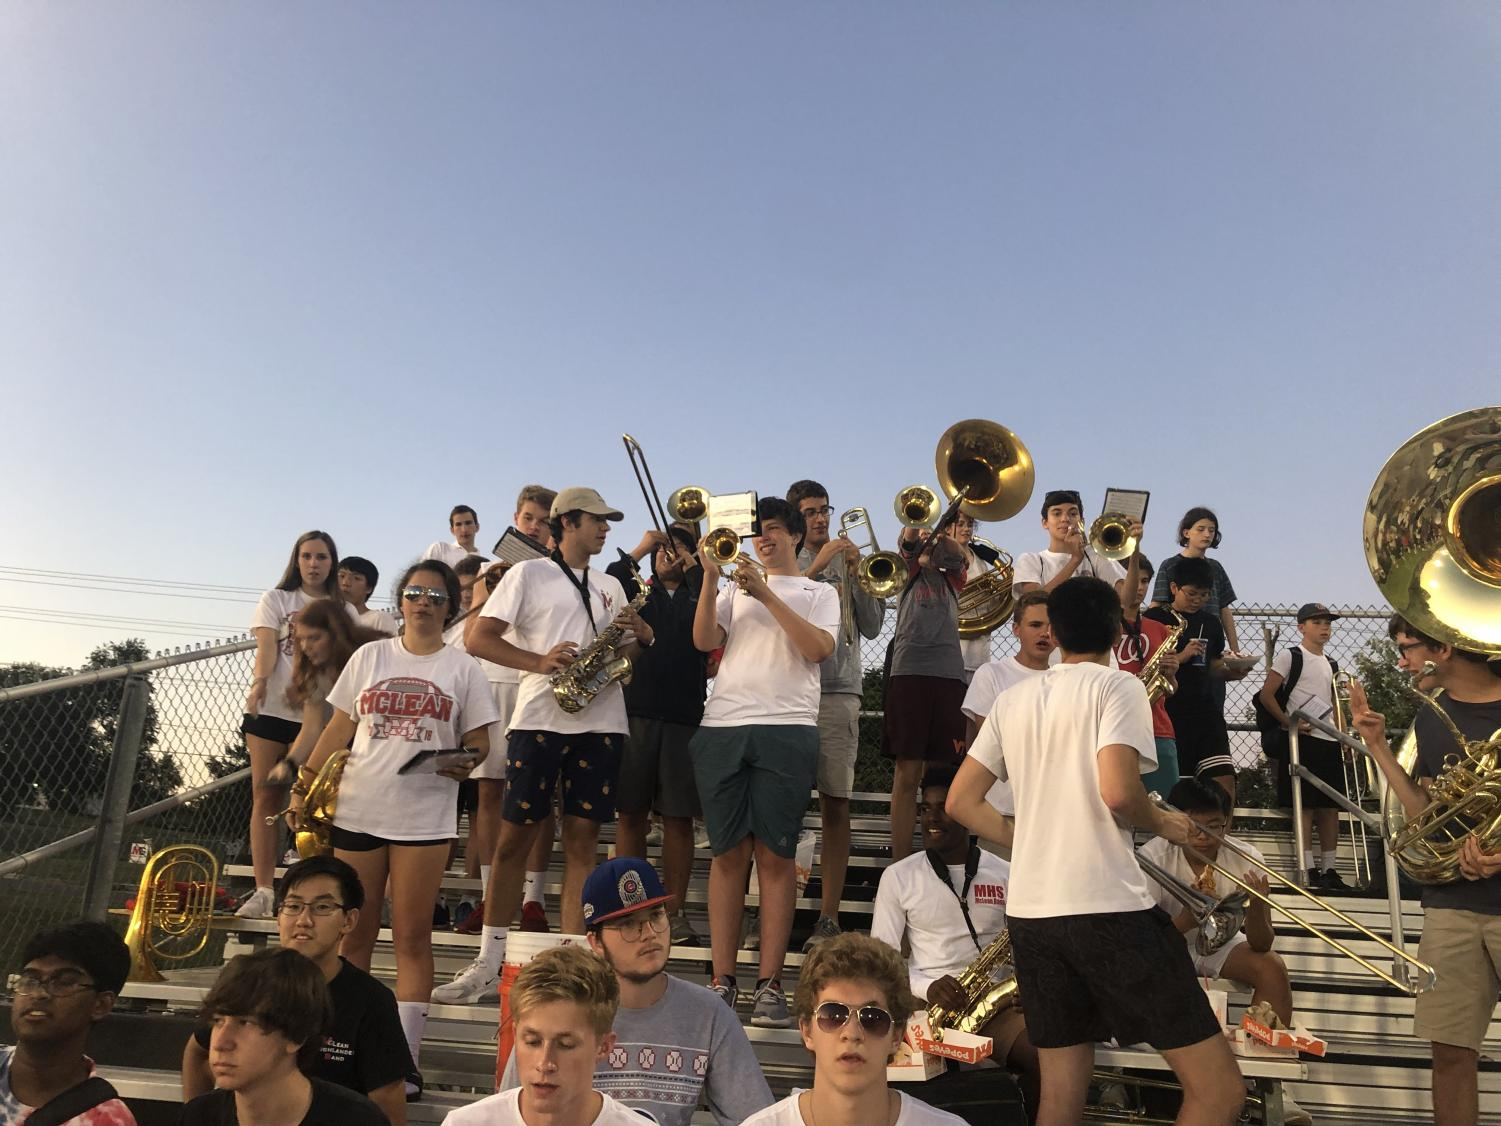 The+McLean+pep+band+play+throughout+the+game.+They+worked+to+increase+excitement+among+spectators.